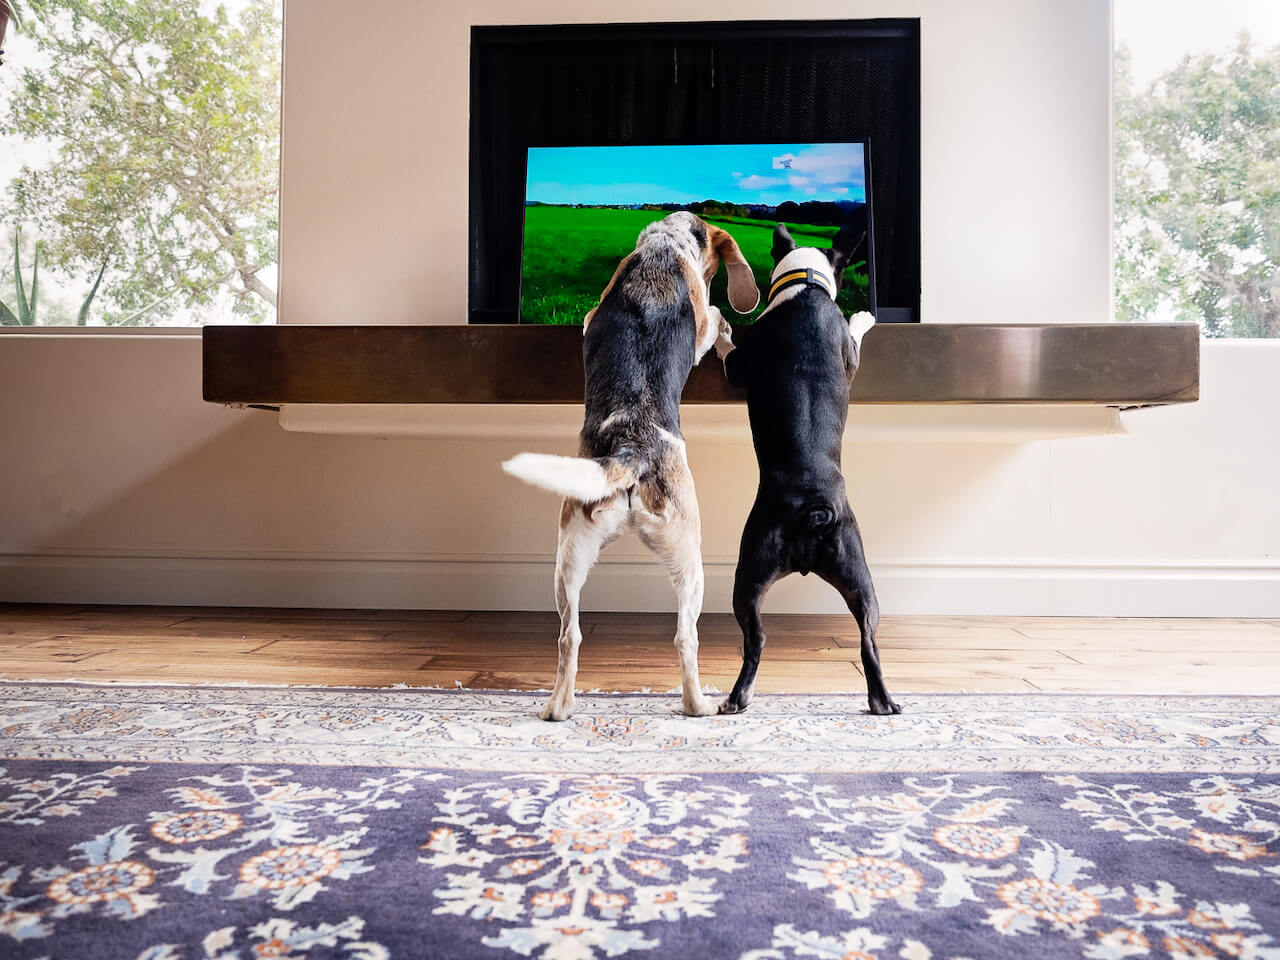 9 Things You Didn't Know About DOGTV